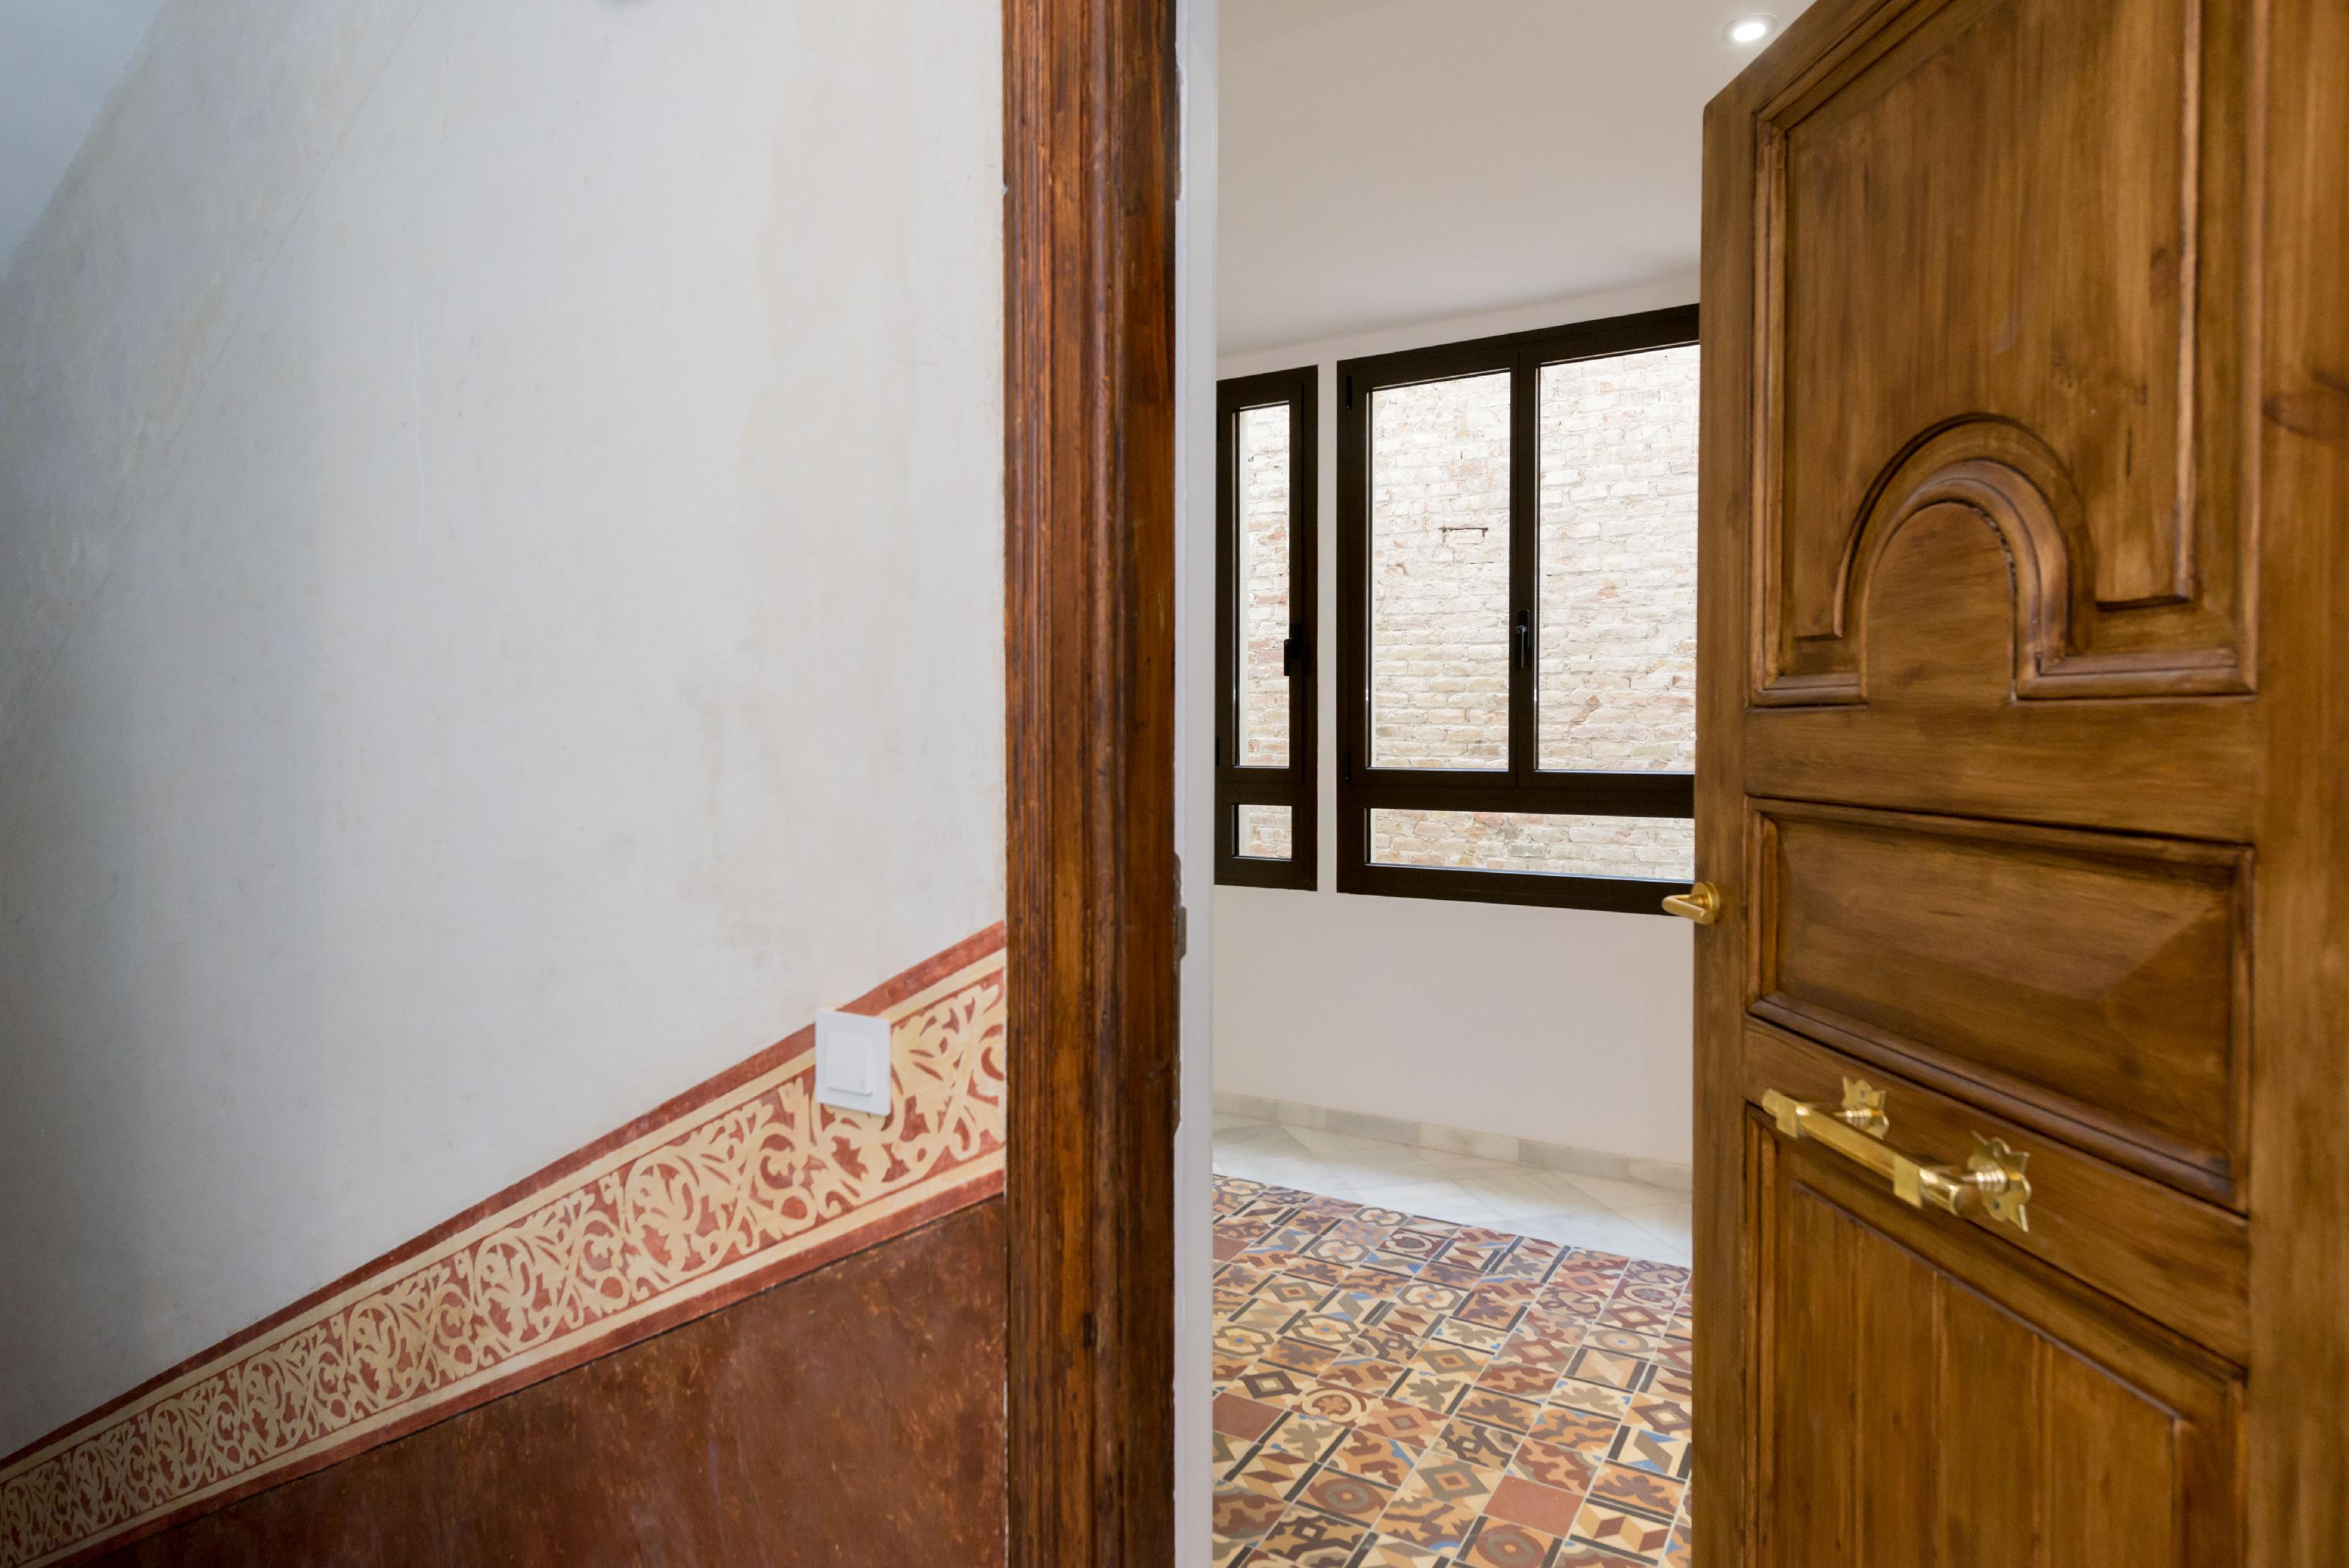 236358 Flat for sale in Eixample, Old Left Eixample 31